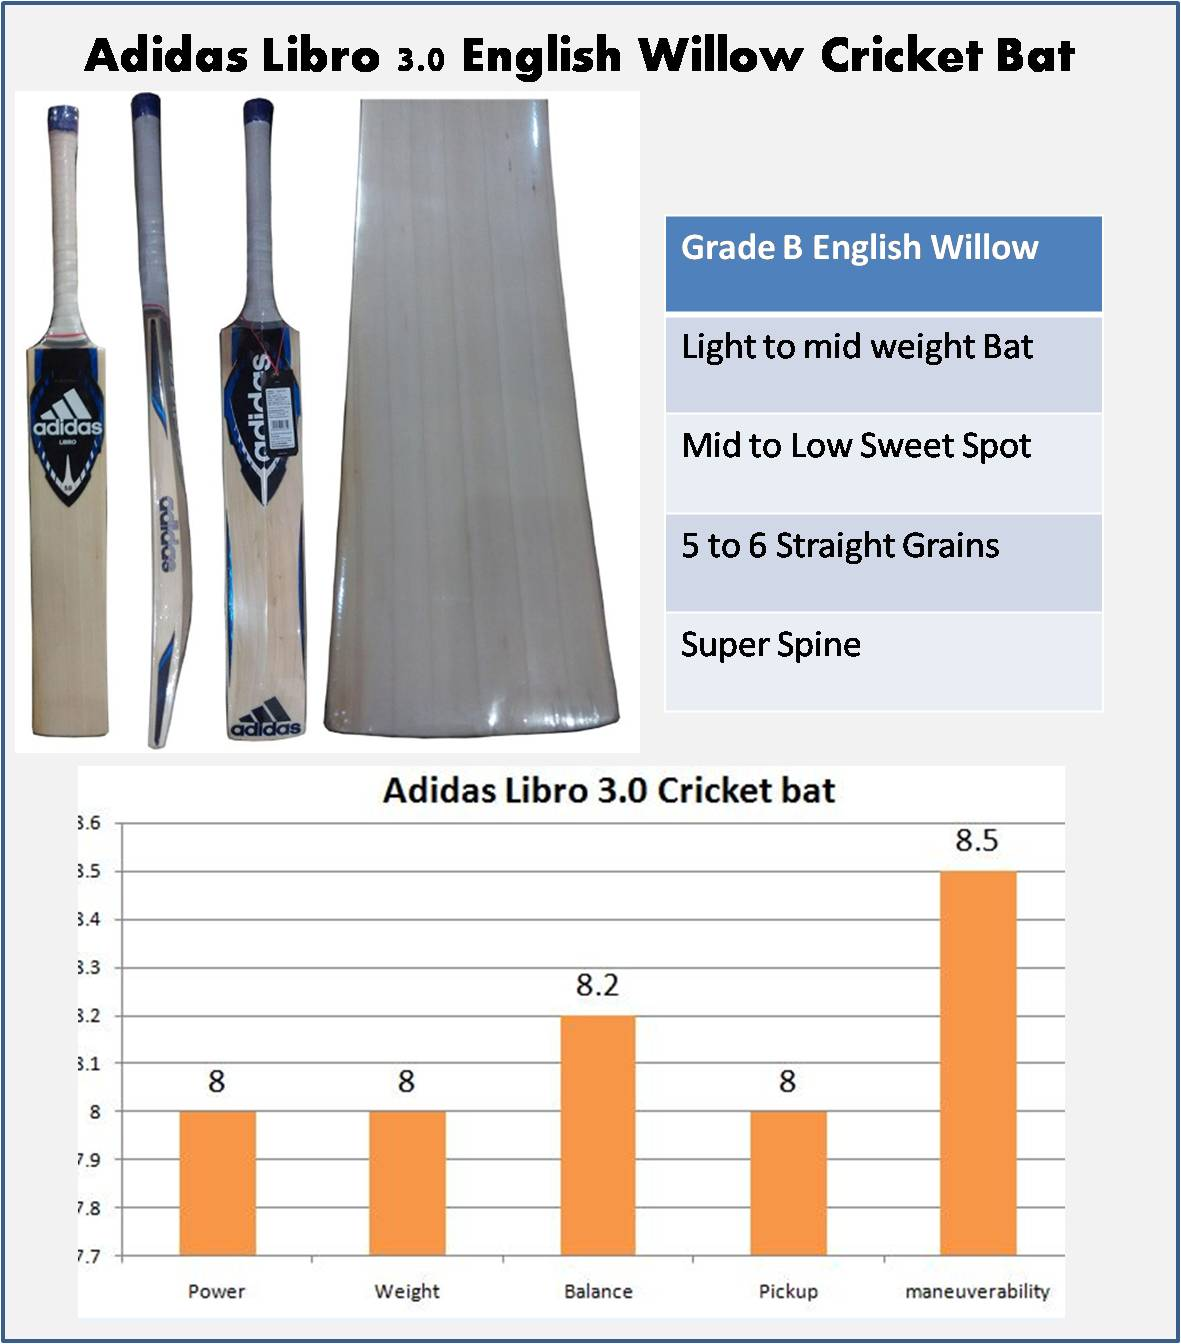 Detail Image Adidas Libro 3.0 English Willow Cricket Bat